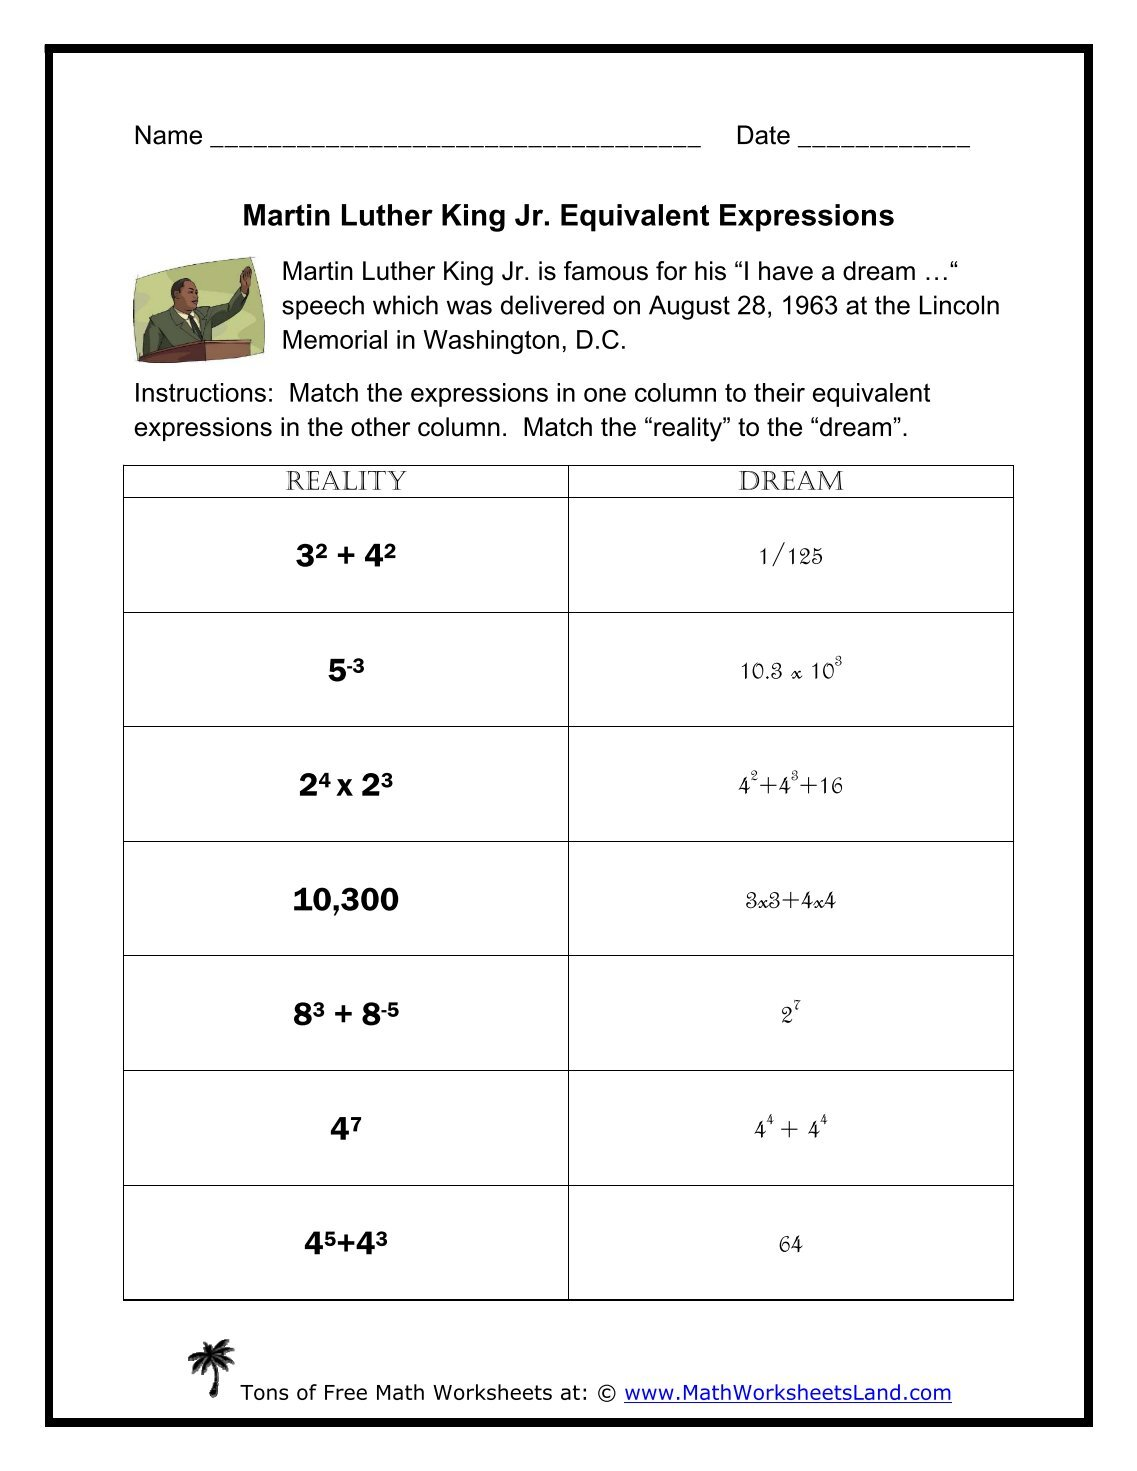 Worksheets Math Worksheets Land 28 math worksheets land dilations worksheet five pack home education